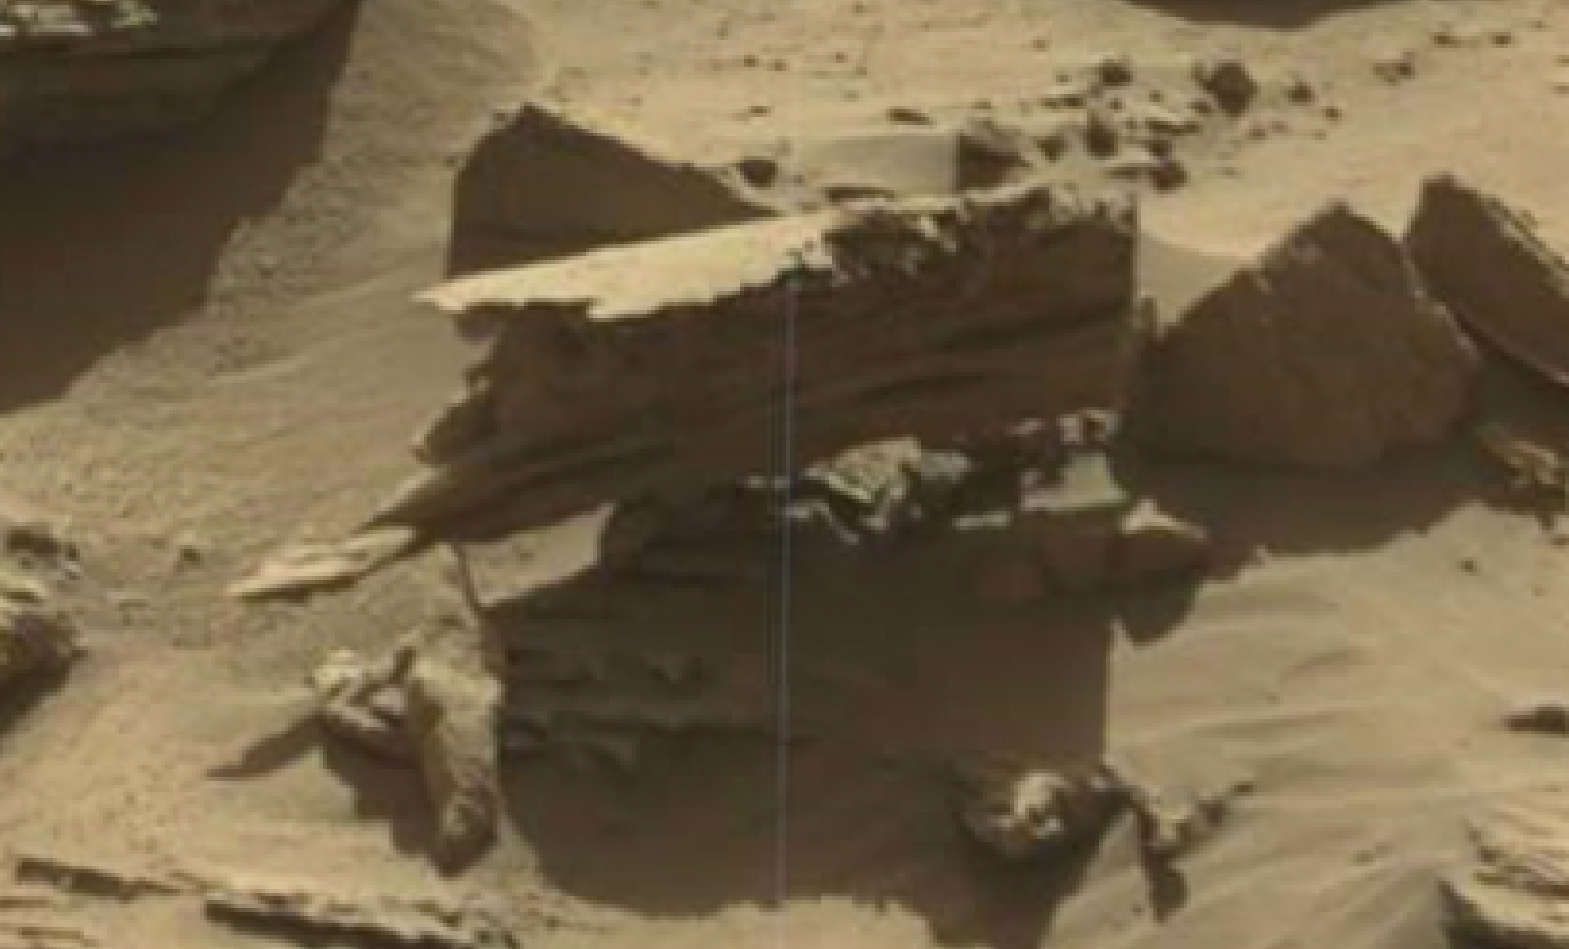 mars sol 1298 anomaly-artifacts 12 was life on mars